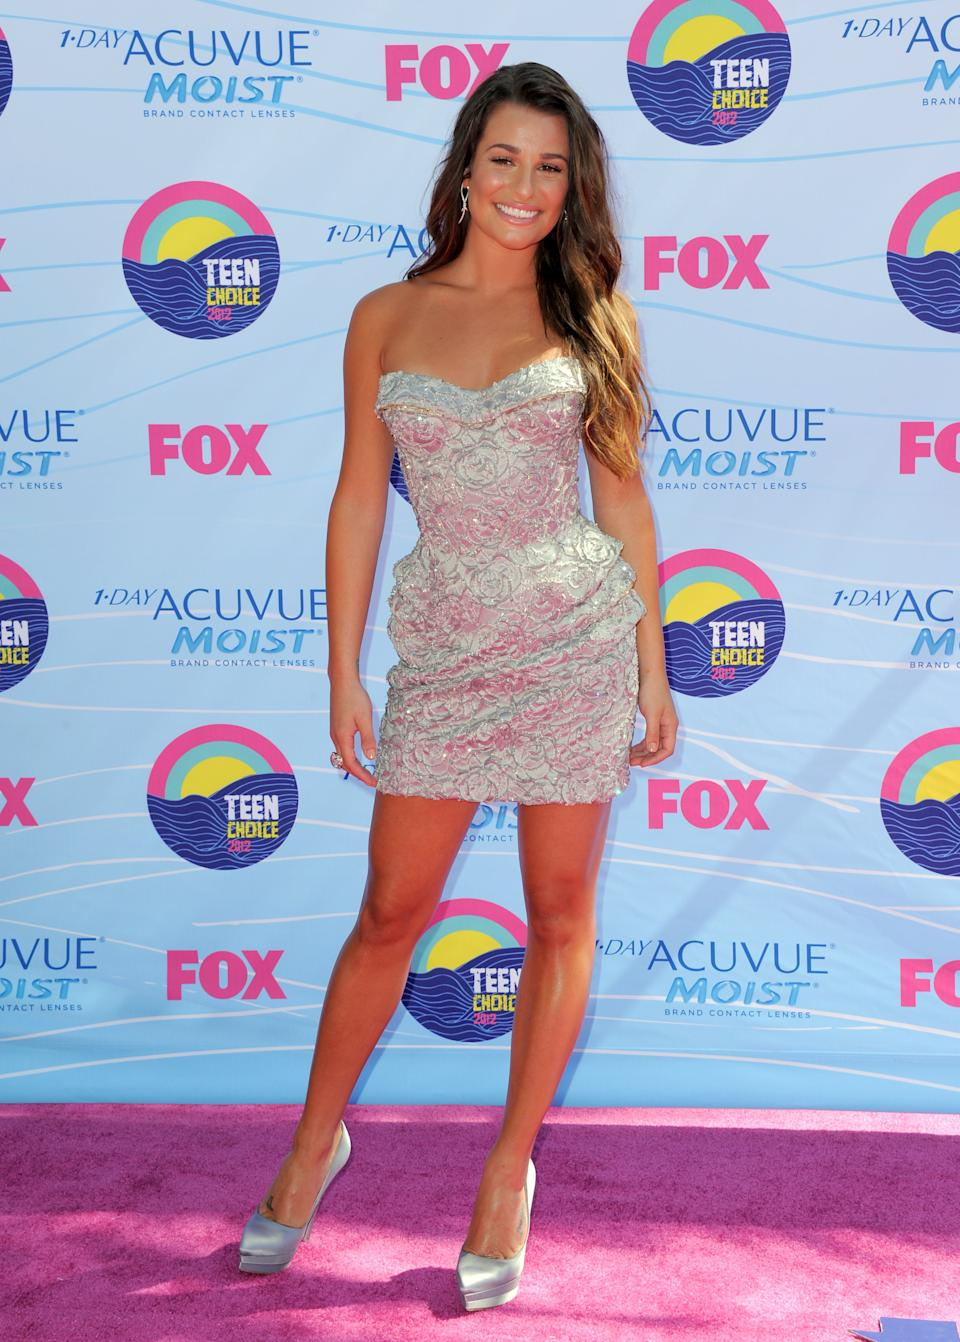 Lea Michele arrives at the Teen Choice Awards on Sunday, July 22, 2012, in Universal City, Calif. (Photo by Jordan Strauss/Invision/AP)